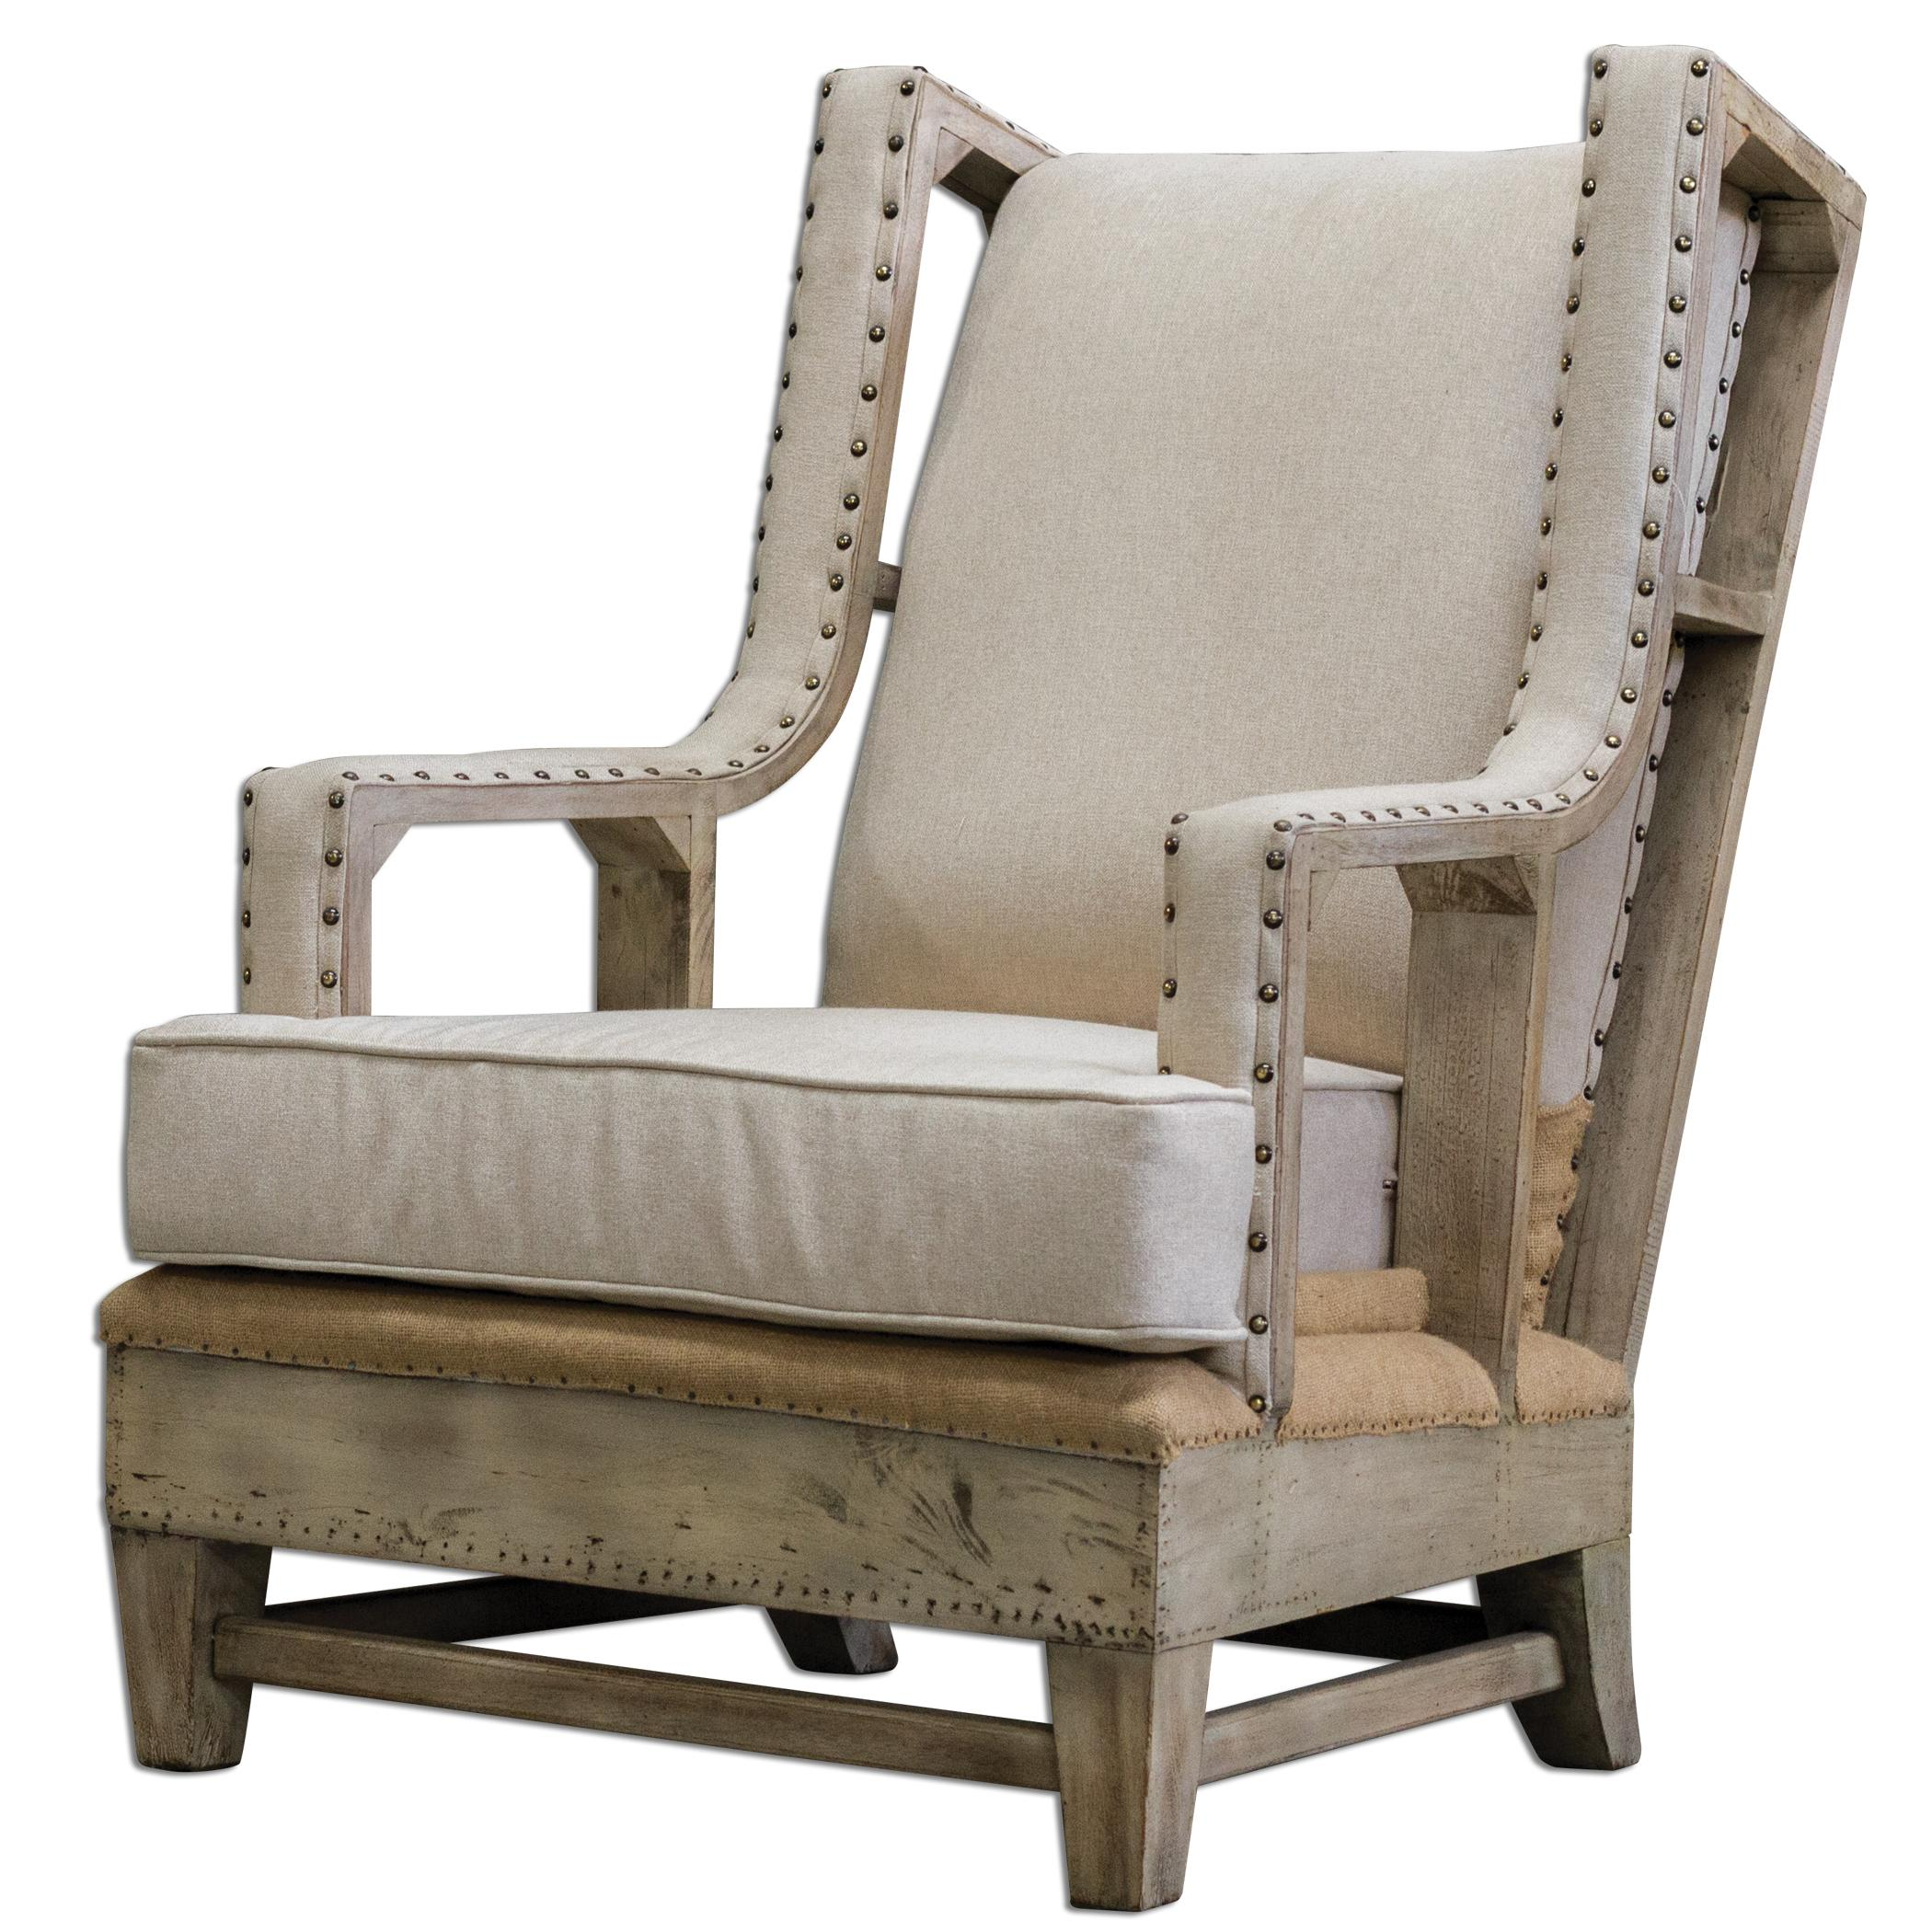 Accent Furniture - Accent Chairs Schafer Linen Arm Chair by Uttermost at Furniture Superstore - Rochester, MN